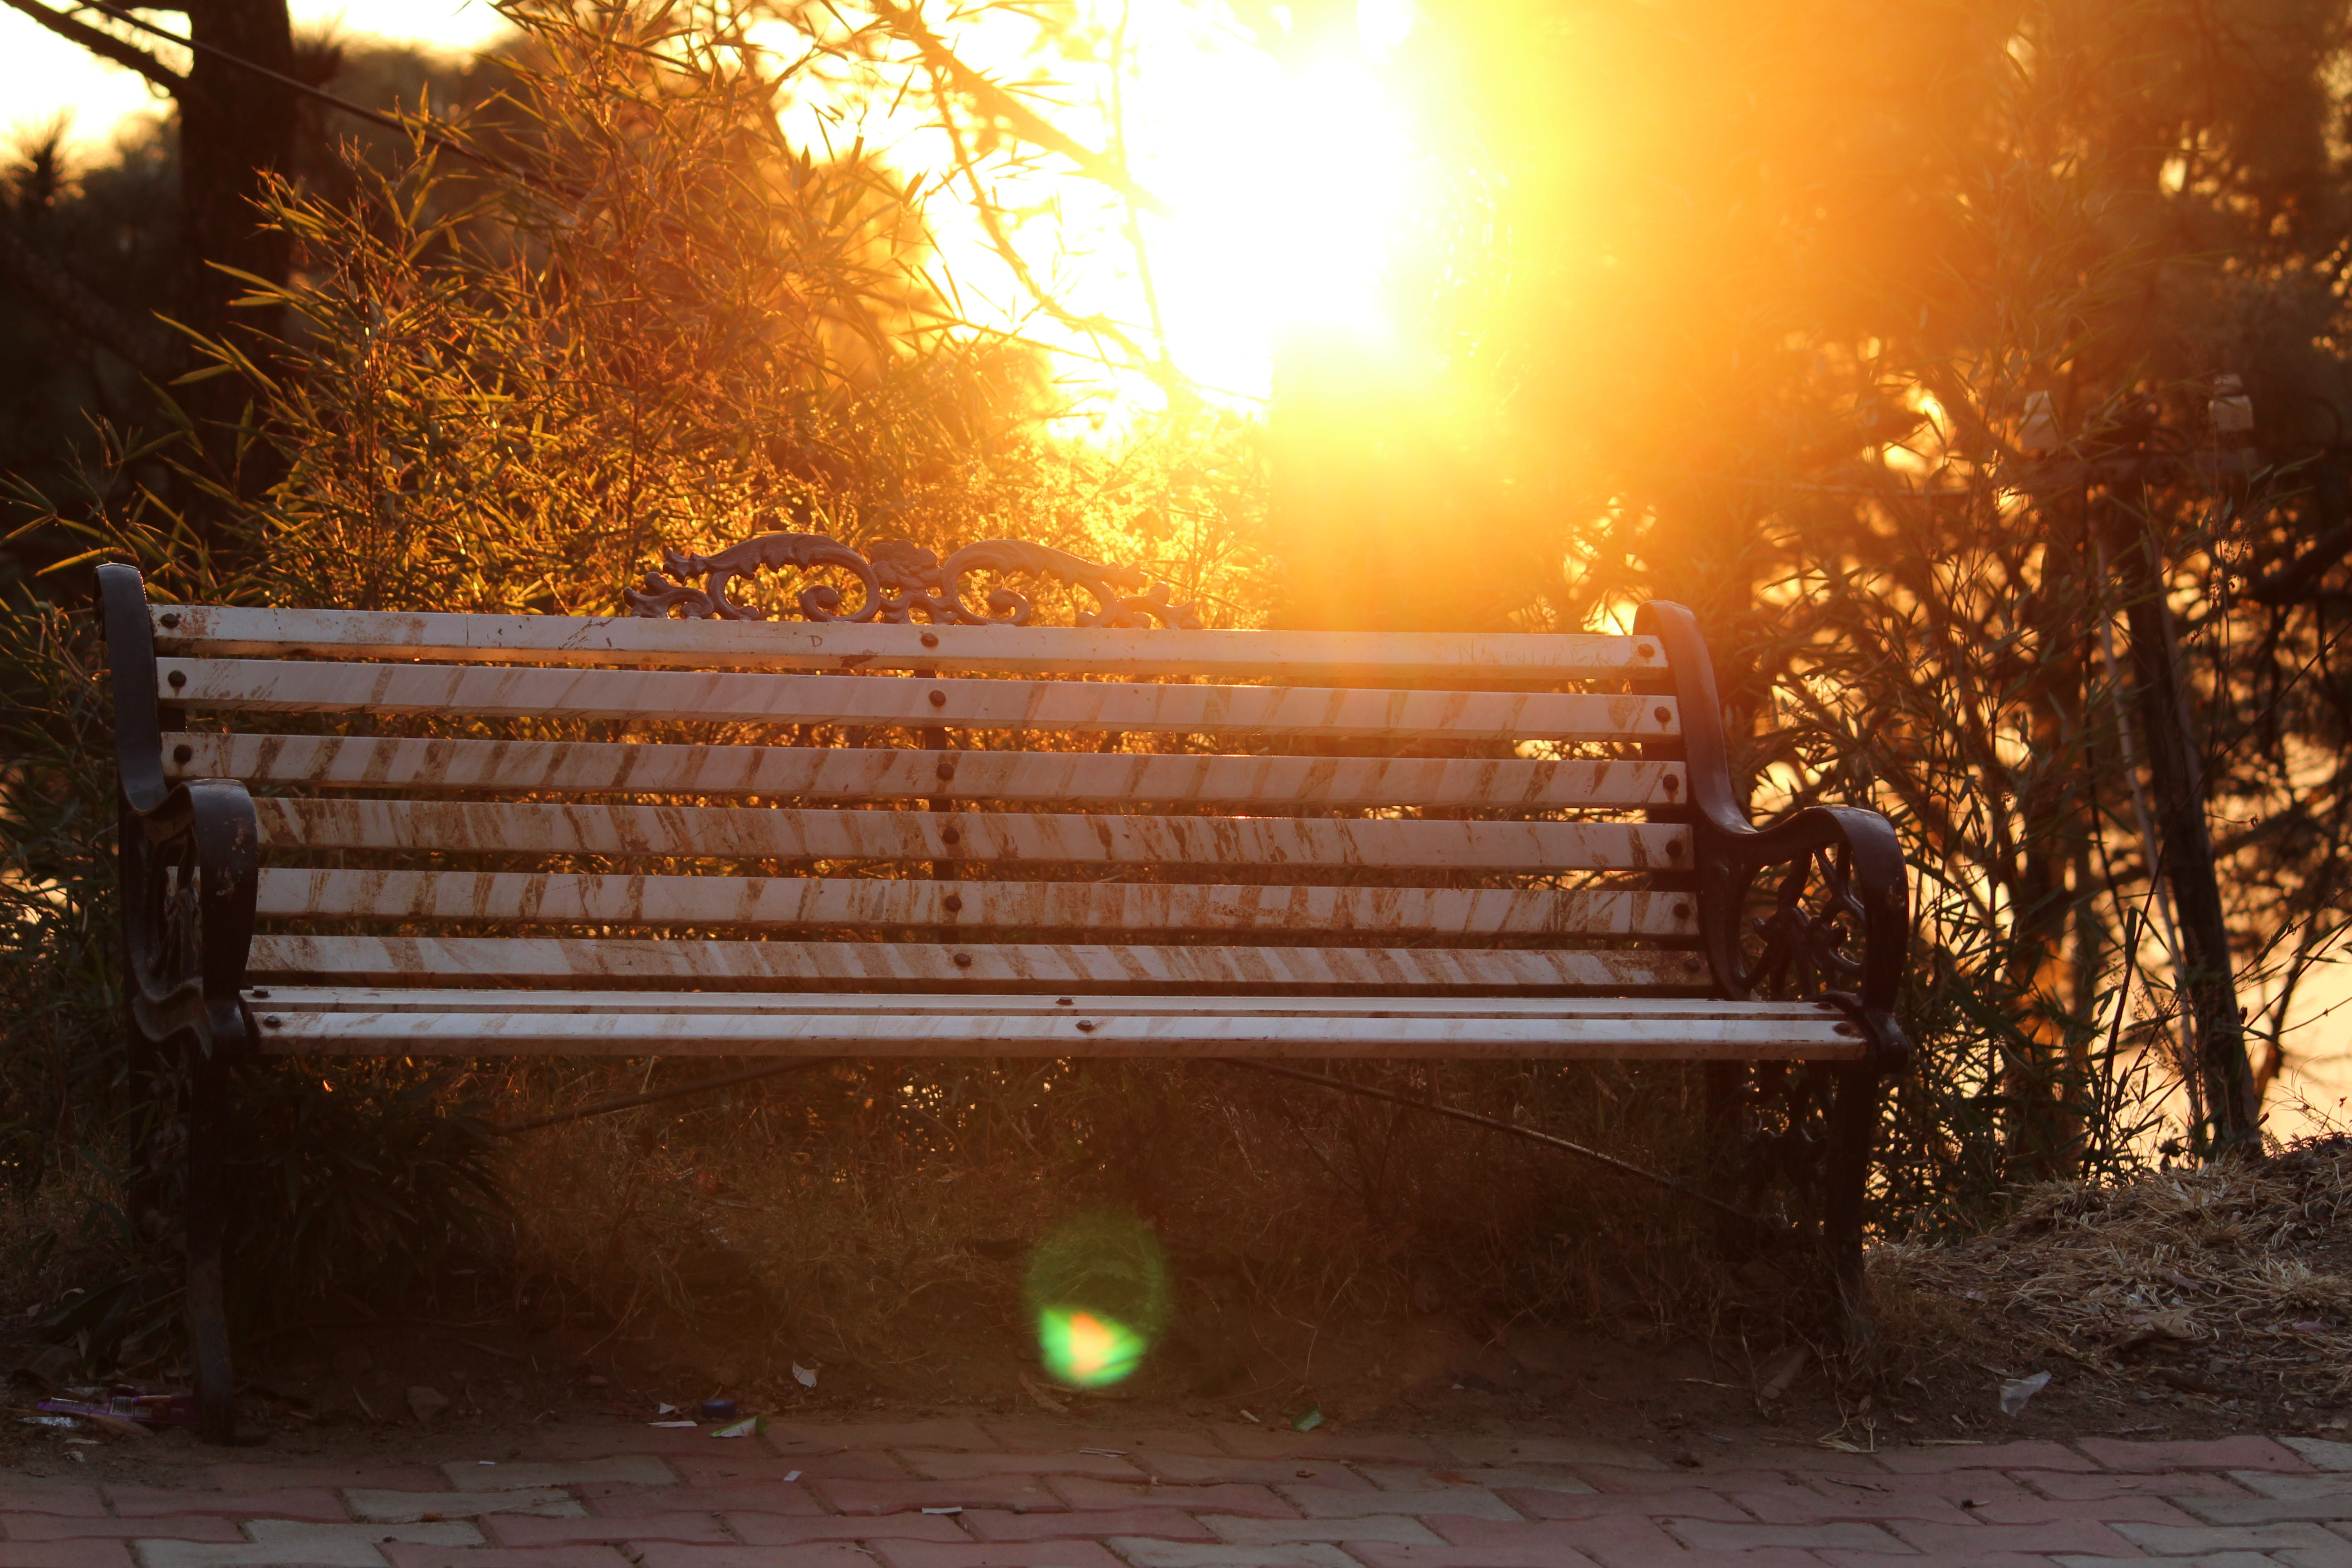 Brown Metal-framed Bench Surrounded by Trees